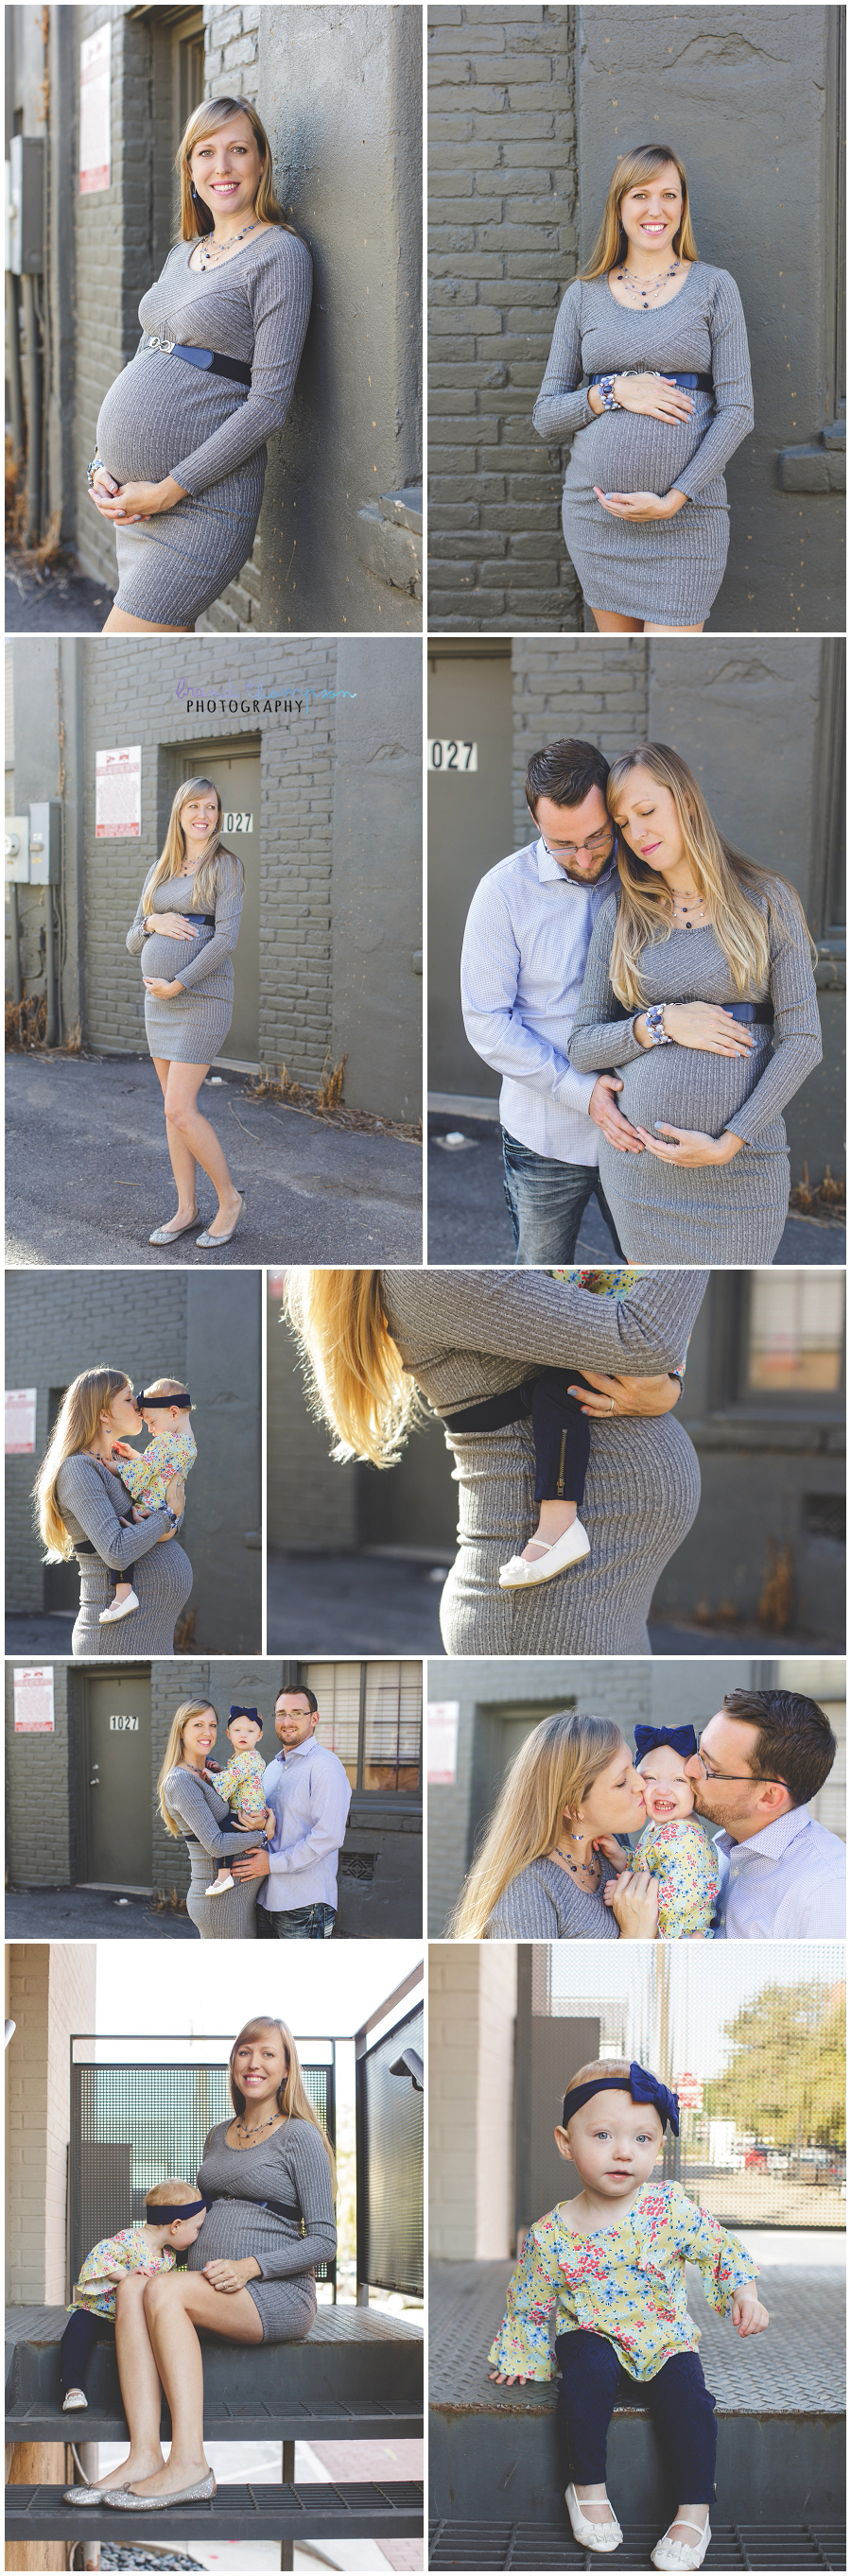 maternity photography in downtown plano, tx